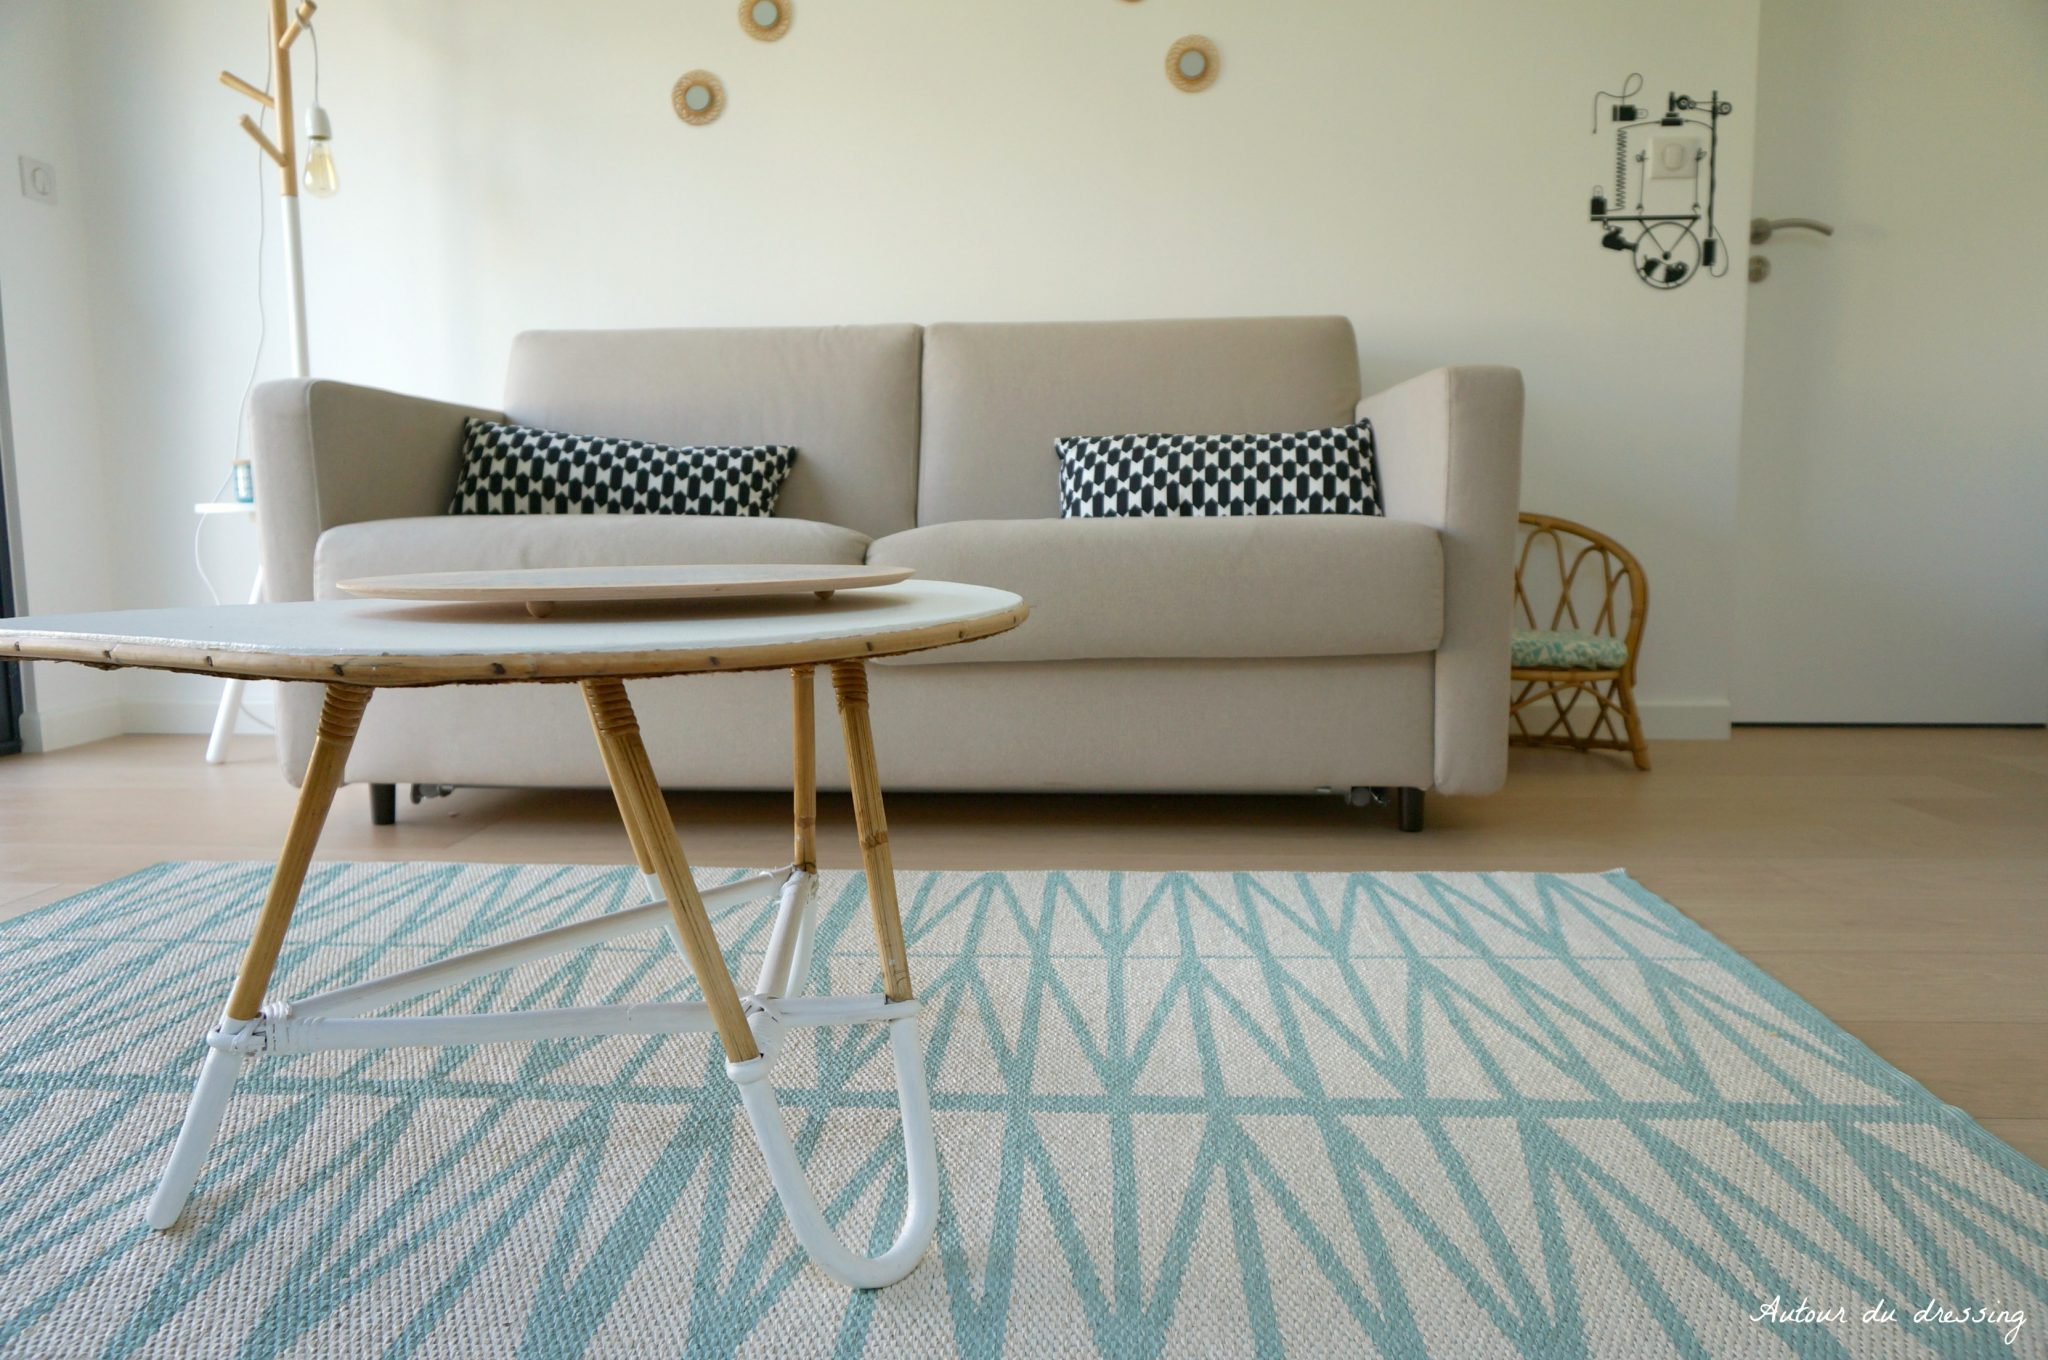 Tapis inspiration scandinave le monde de l a for Tableau salon scandinave